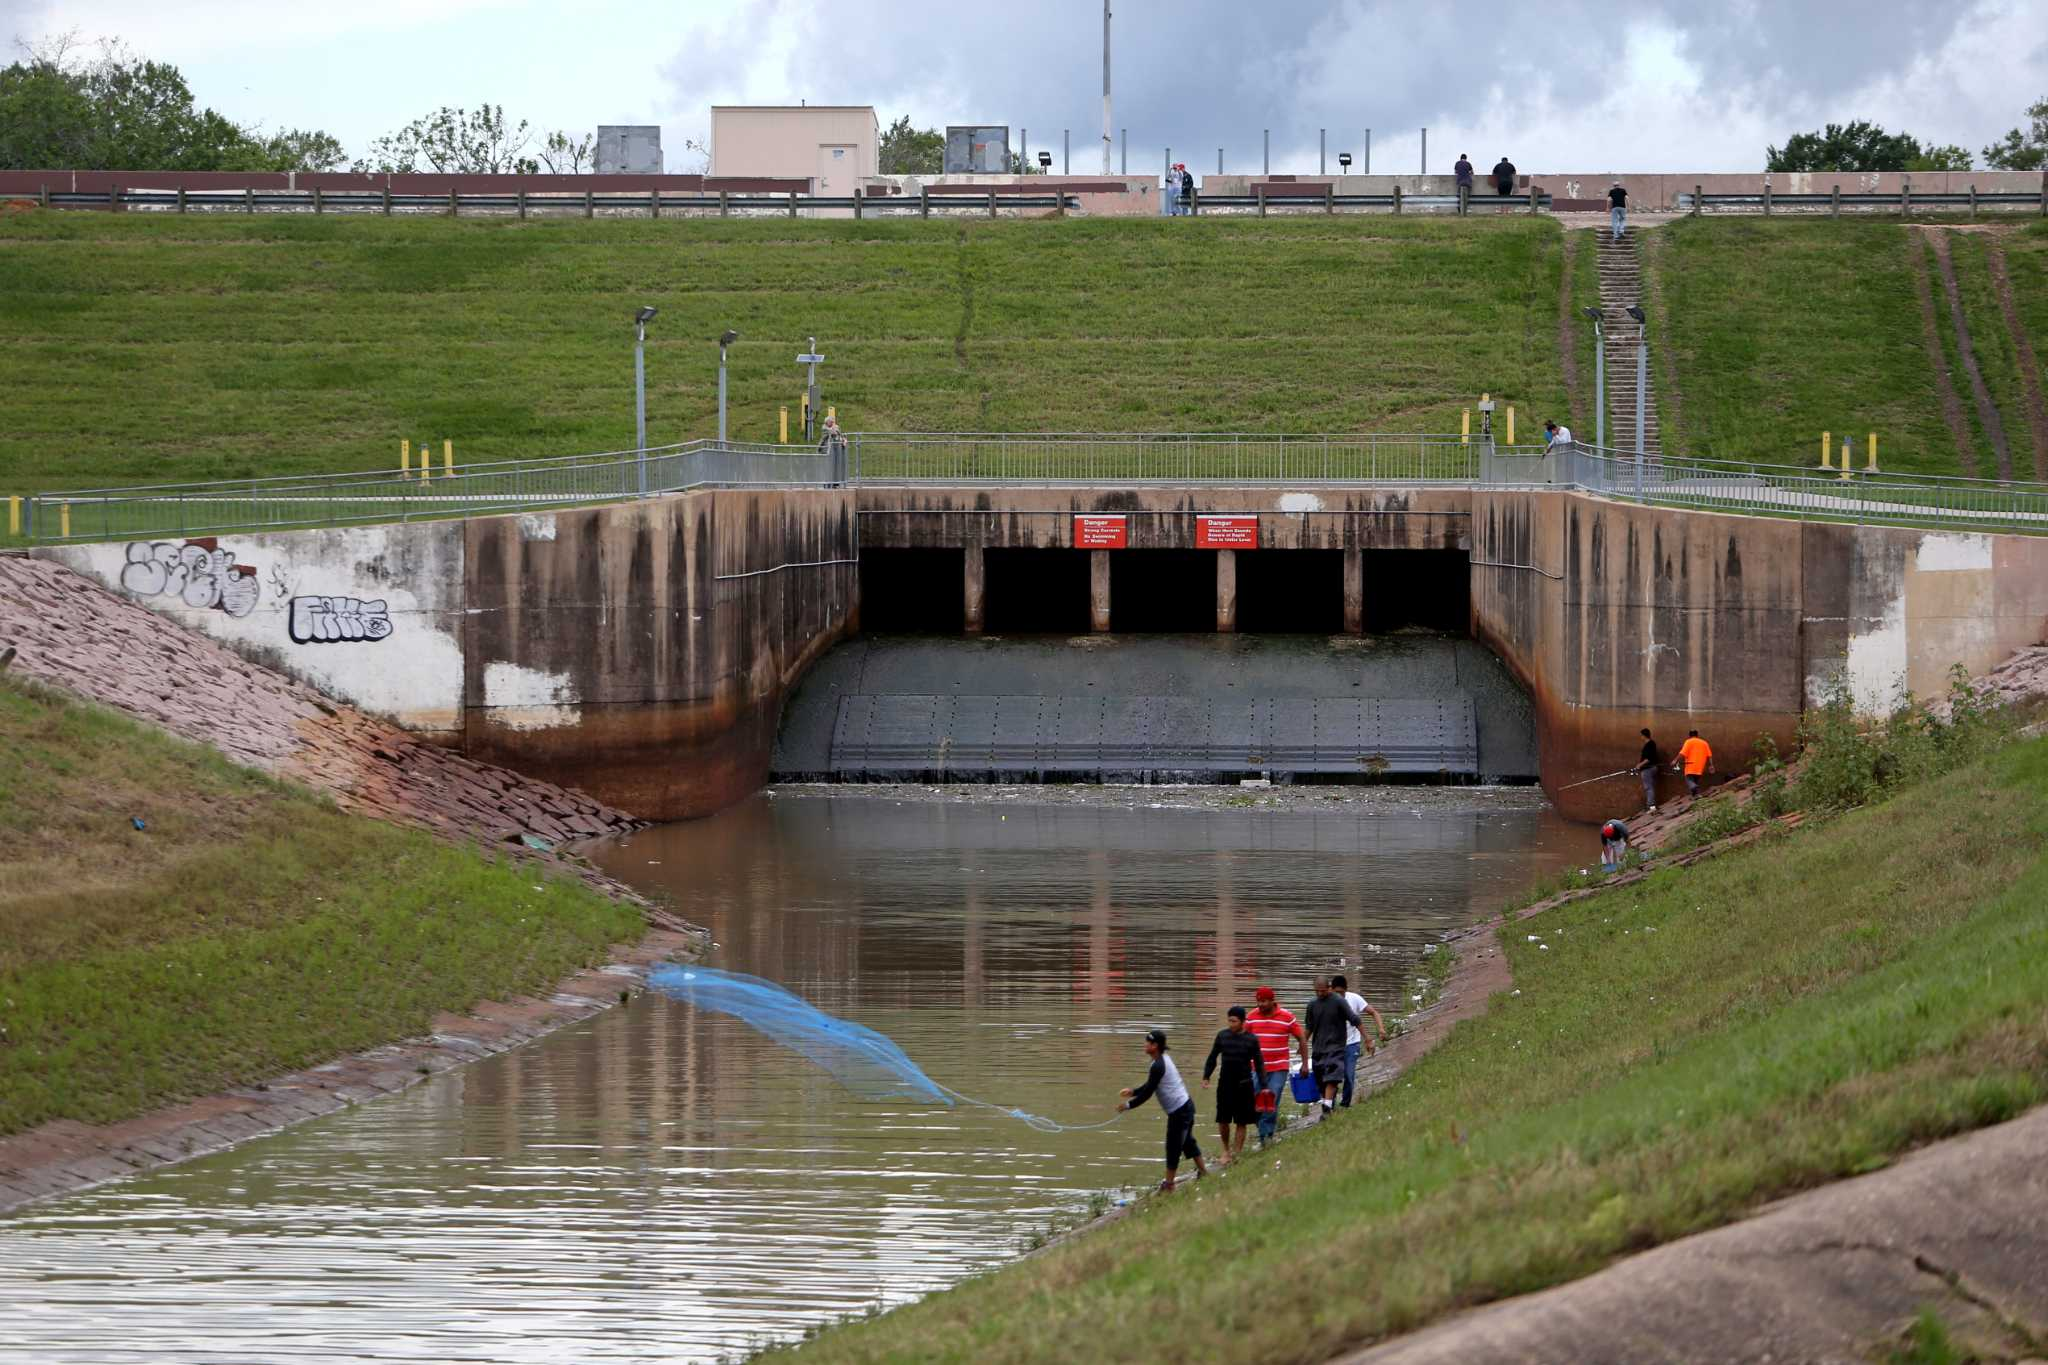 Lake Conroe Dams Releases Cause Flood Of Lawsuits Houston Chronicle Hurricane Boat 201 Wiring Diagrams A Man Throws Net Into Buffalo Bayou With The Barker Dam And Reservoir In